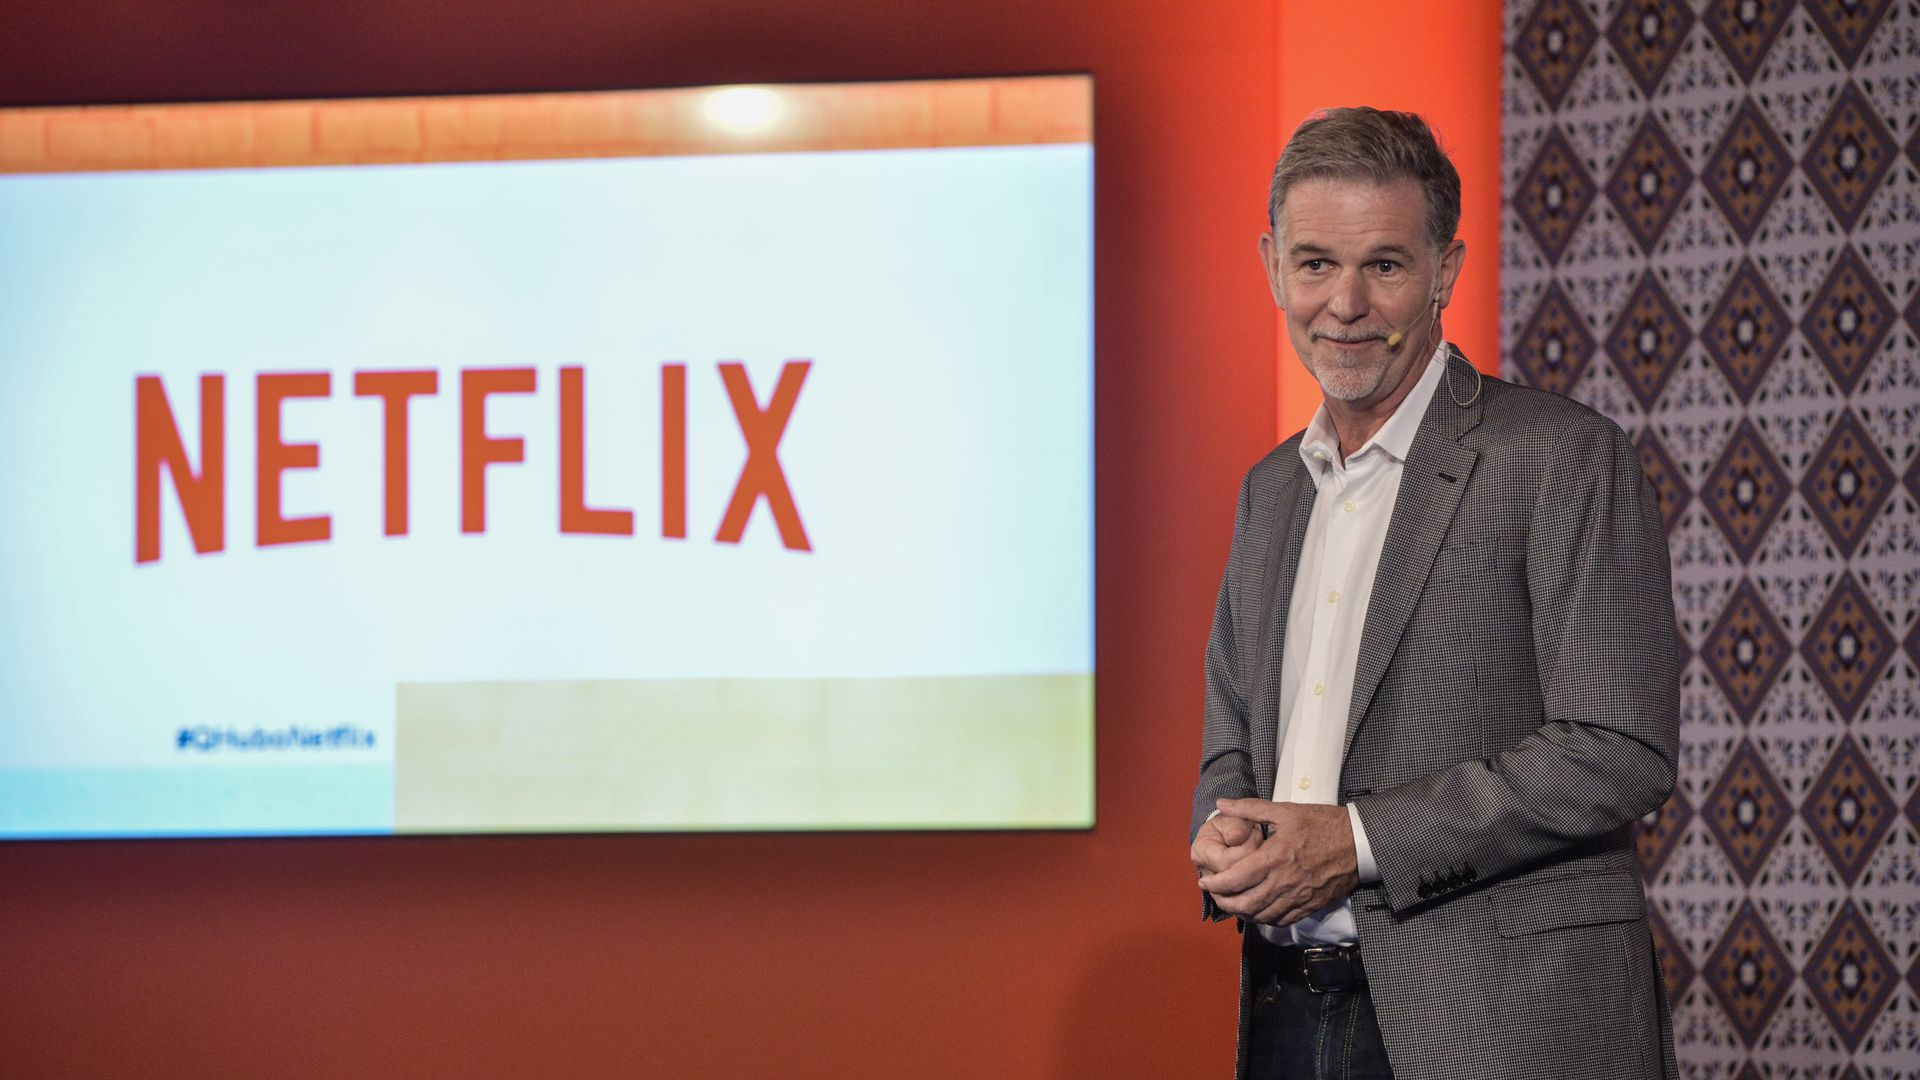 Reed Hastings standing on a stage with the Netflix logo on a screen in the background.